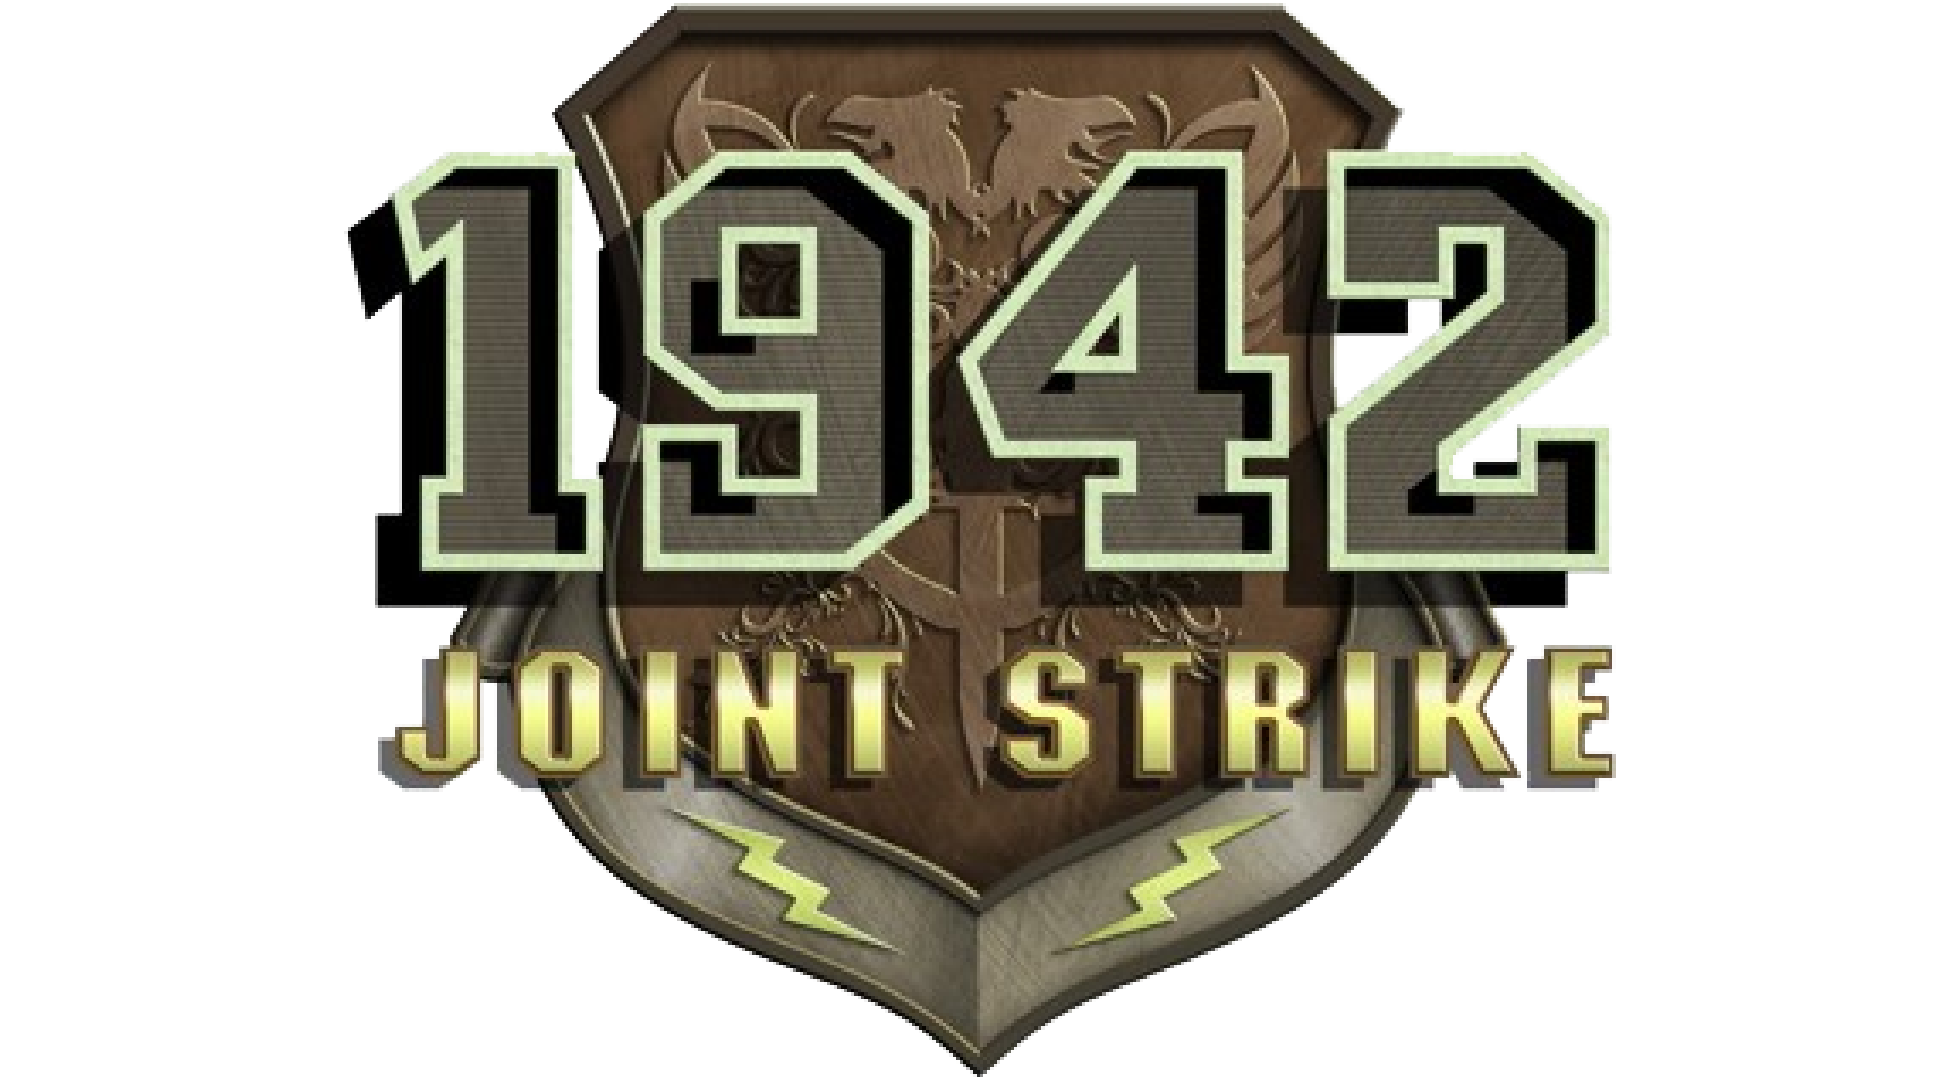 1942: Joint Strike Logo